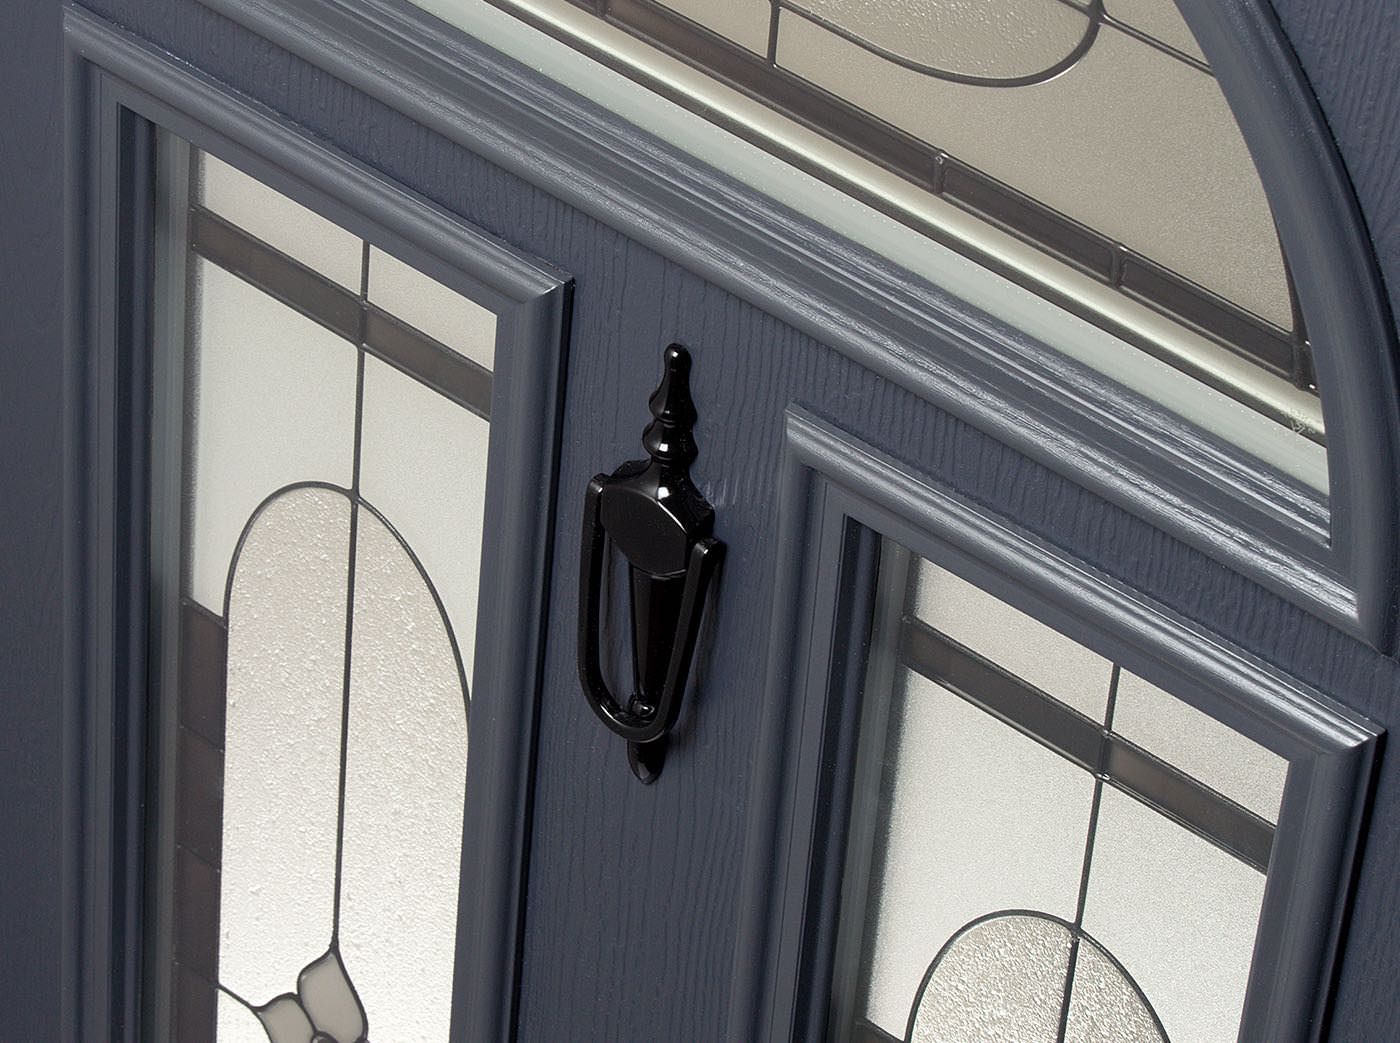 WHAT ARE THE BEST COMPOSITE DOORS ON THE MARKET?